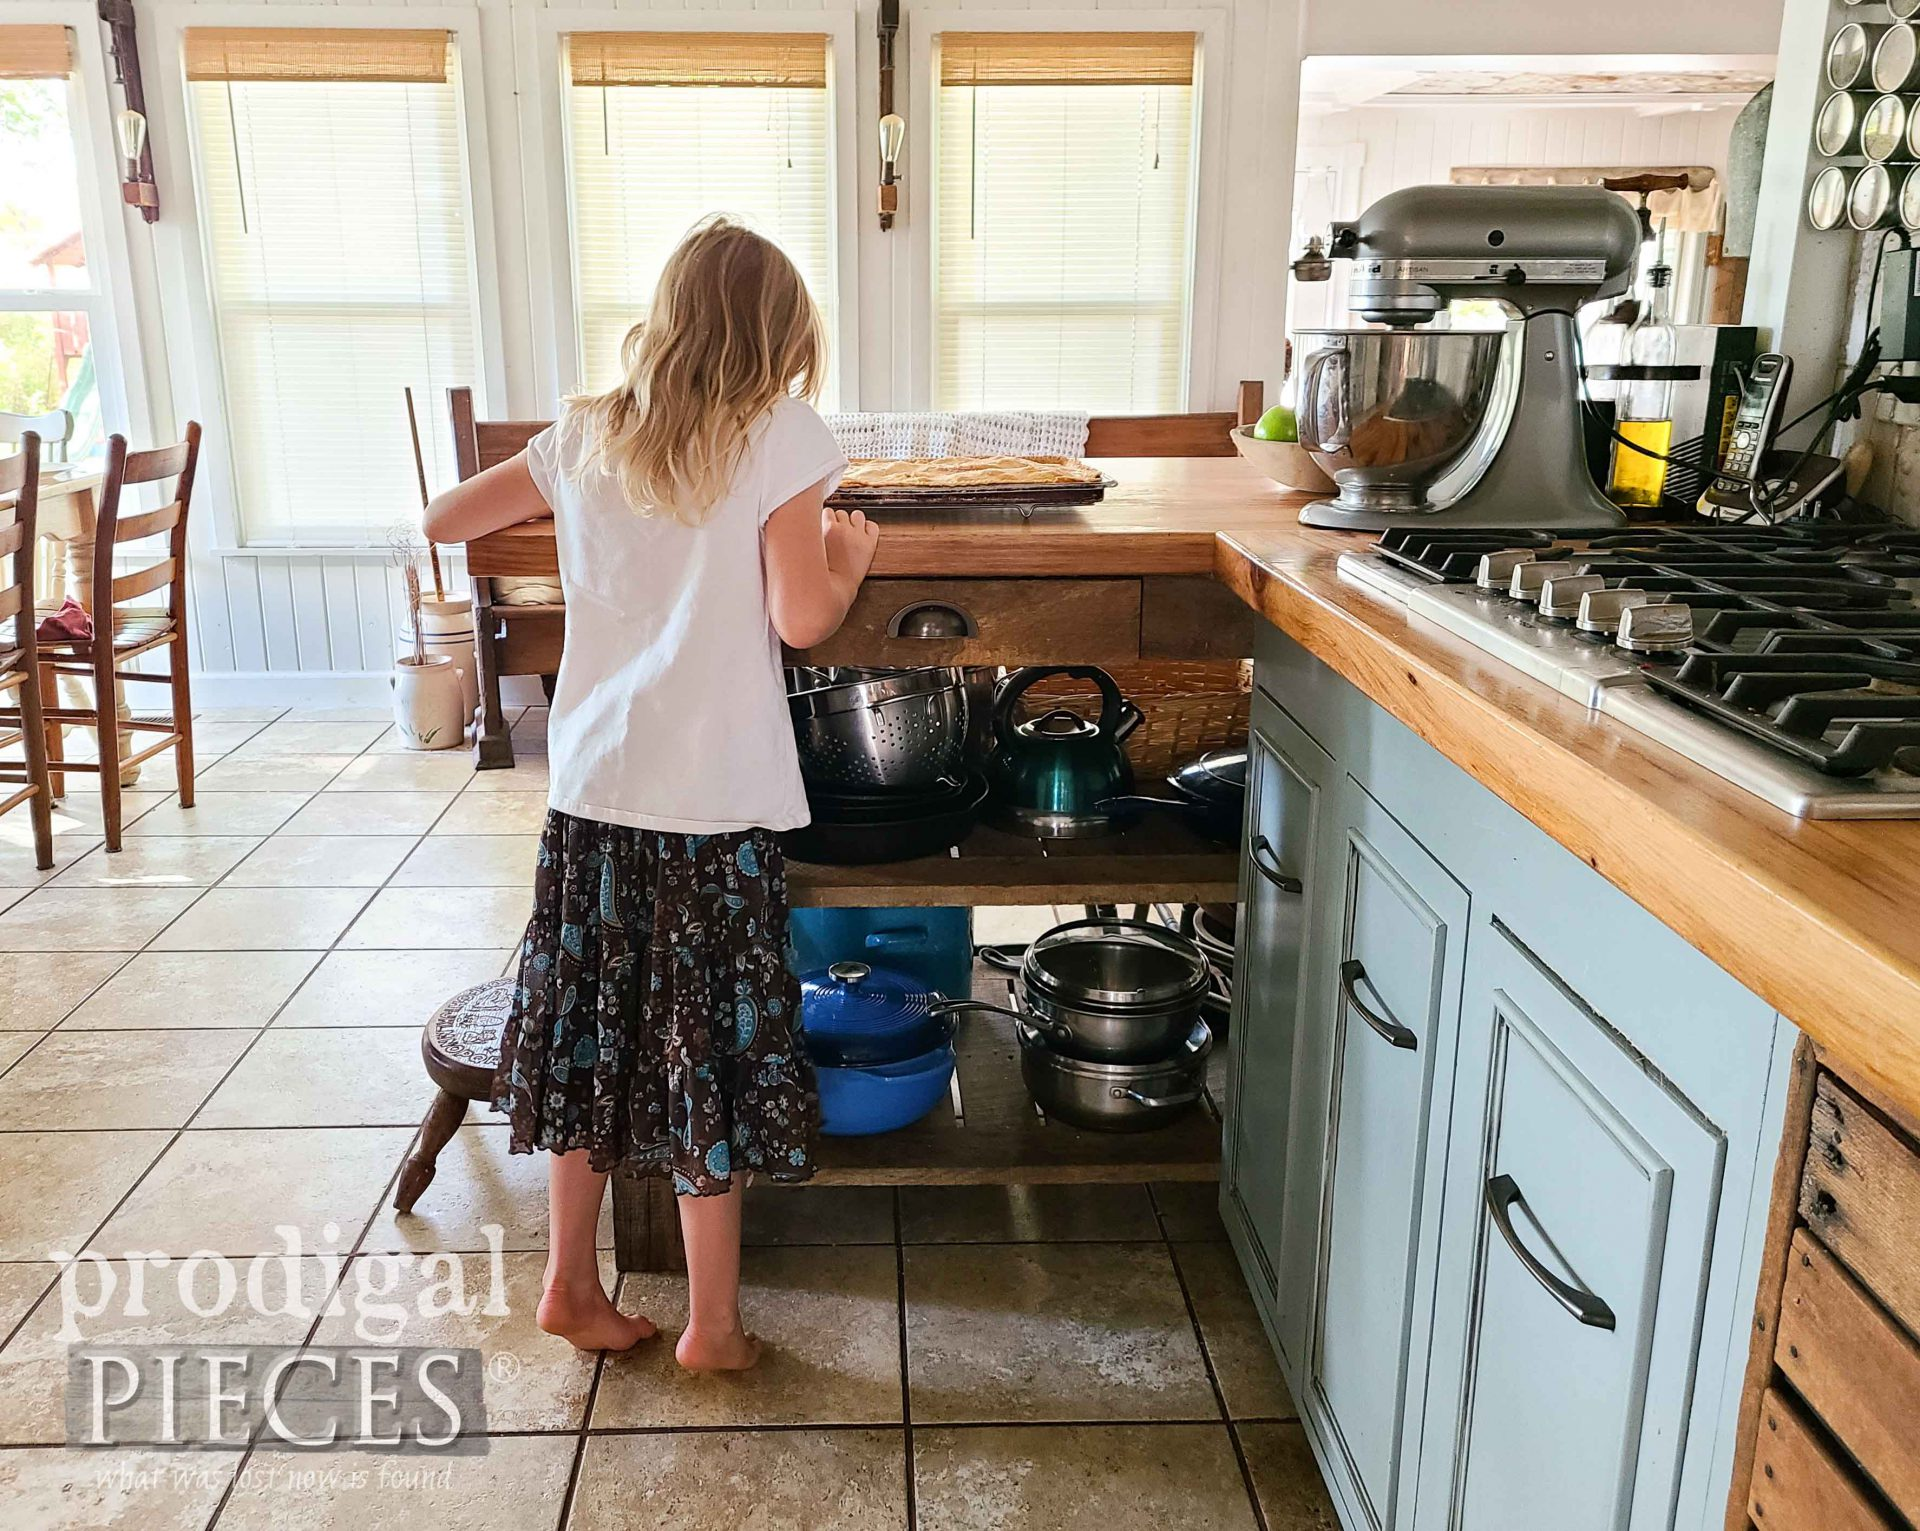 Girls Smelling Freshly Baked Apple Jack Dessert by Larissa of Prodigal Pieces   prodigalpieces.com #prodigalpieces #food #recipe #dessert #baking #thanksgiving